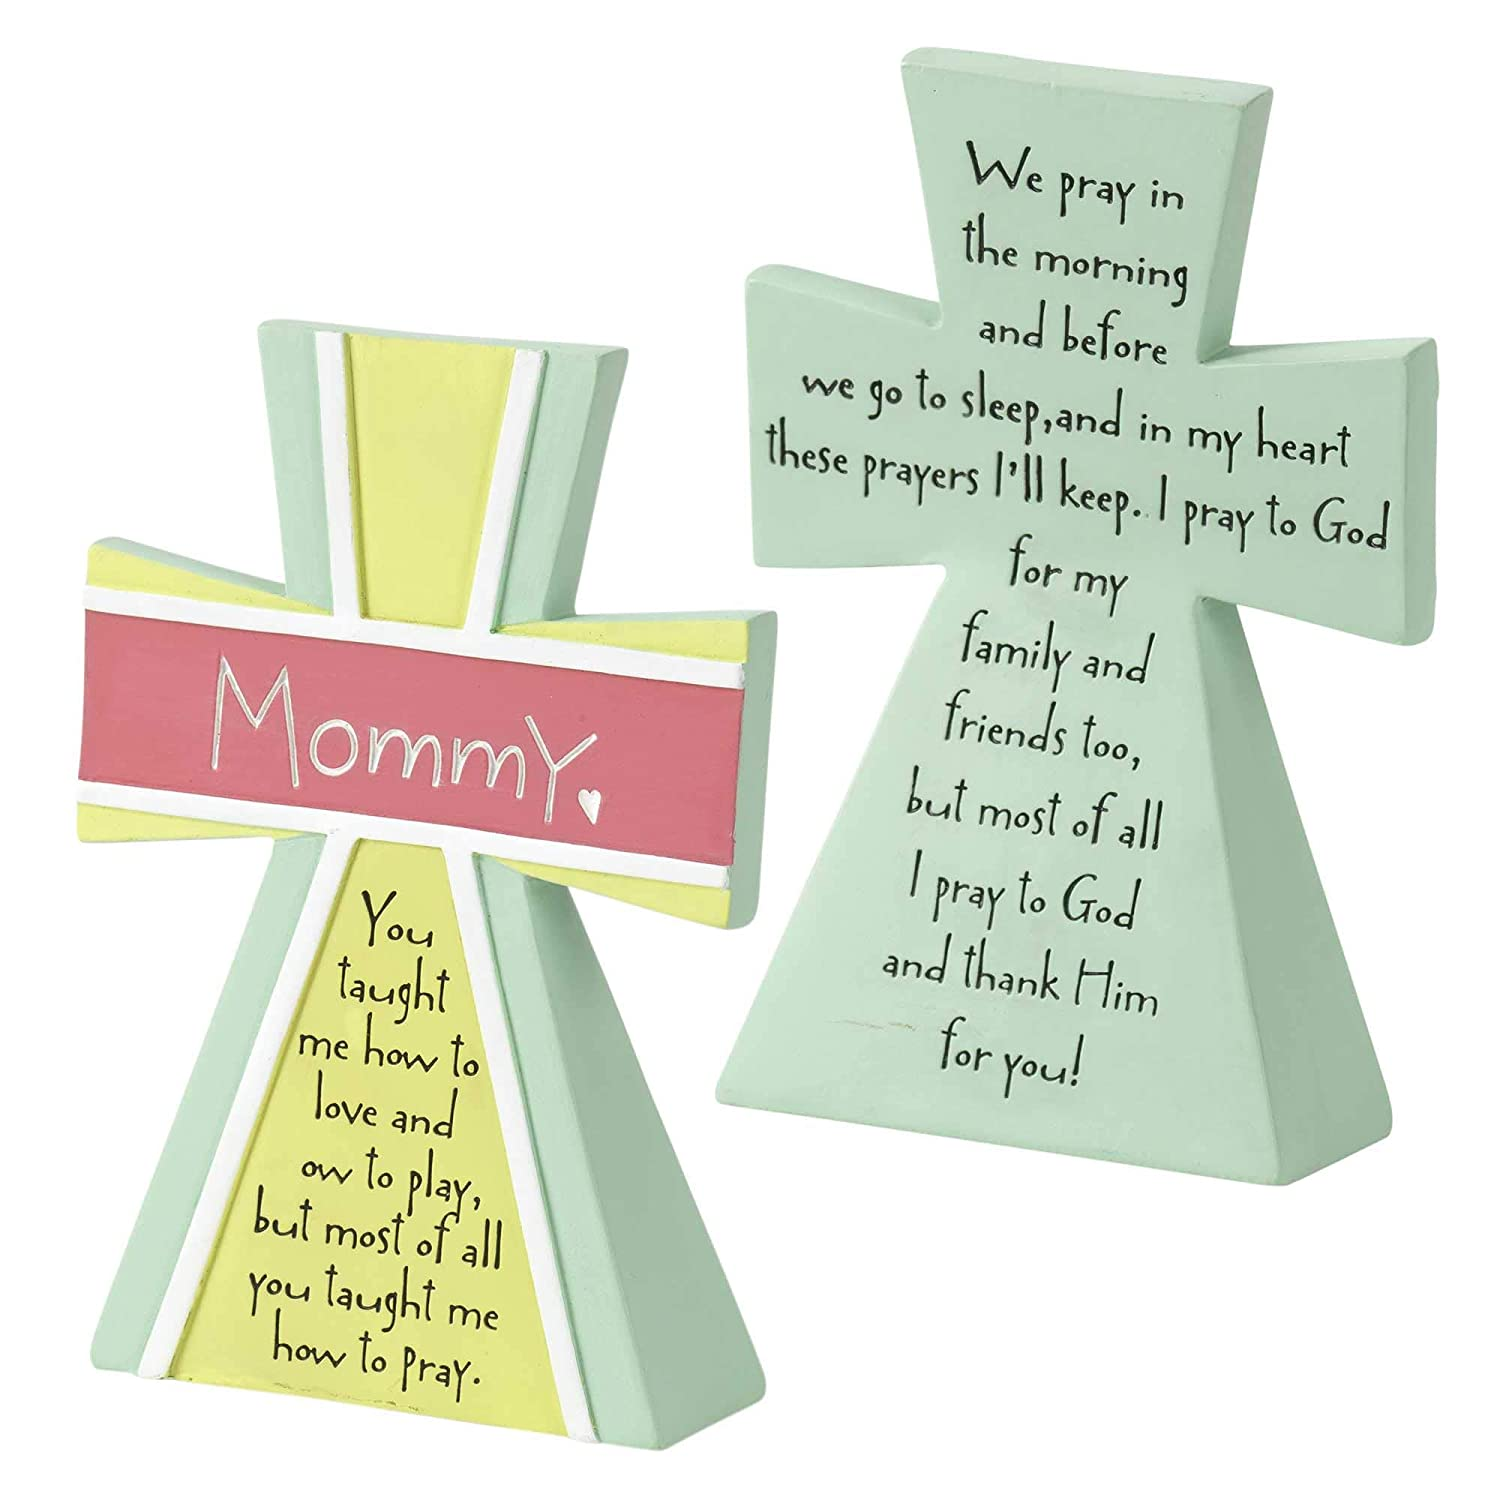 Dicksons Mommy You Taught Me Heart Soft Pastels Resin Stone ...